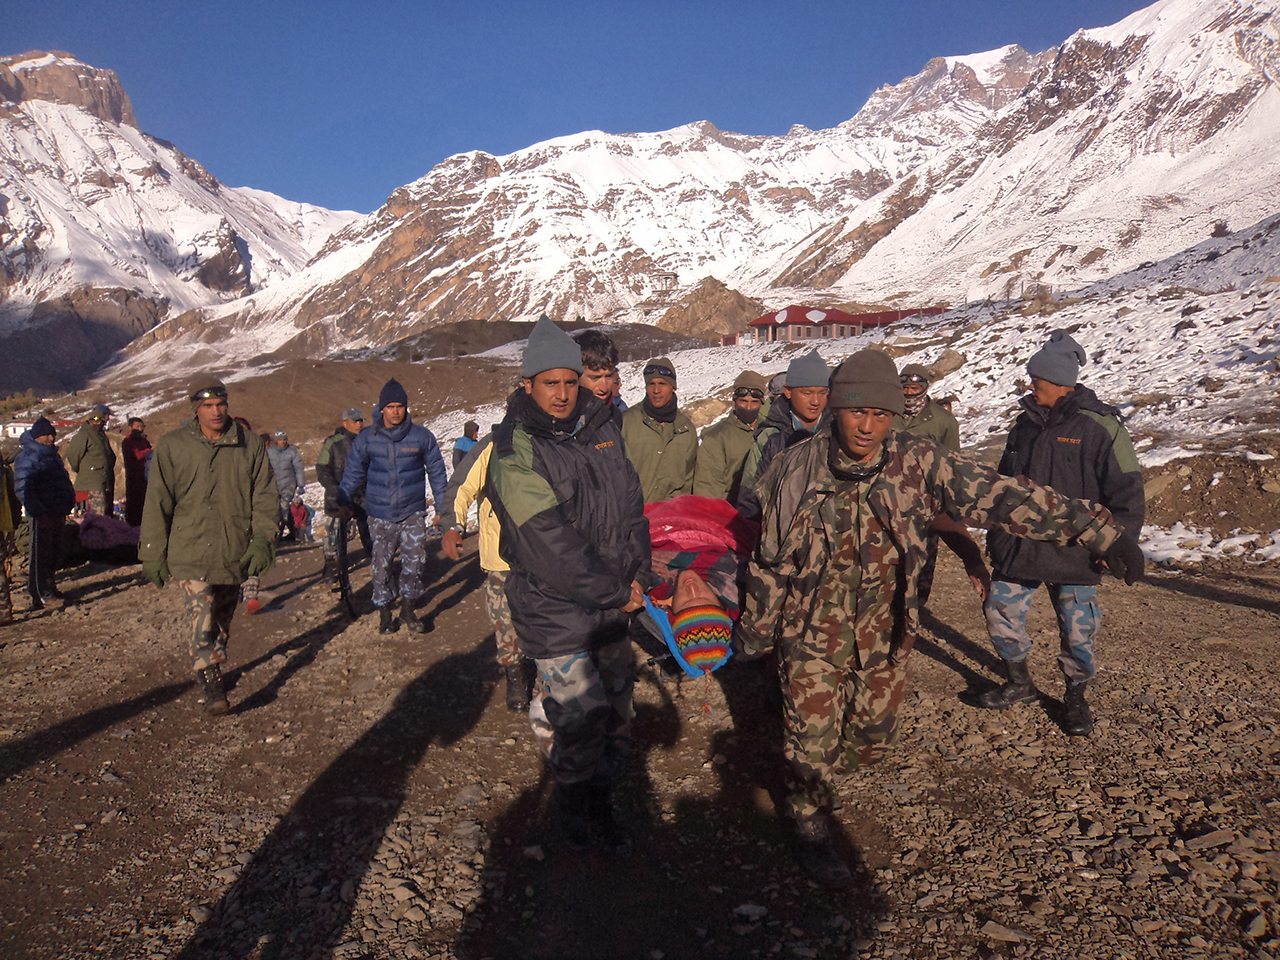 NEPAL-HIMALAYAS-ACCIDENT-MOUNTAINEERING